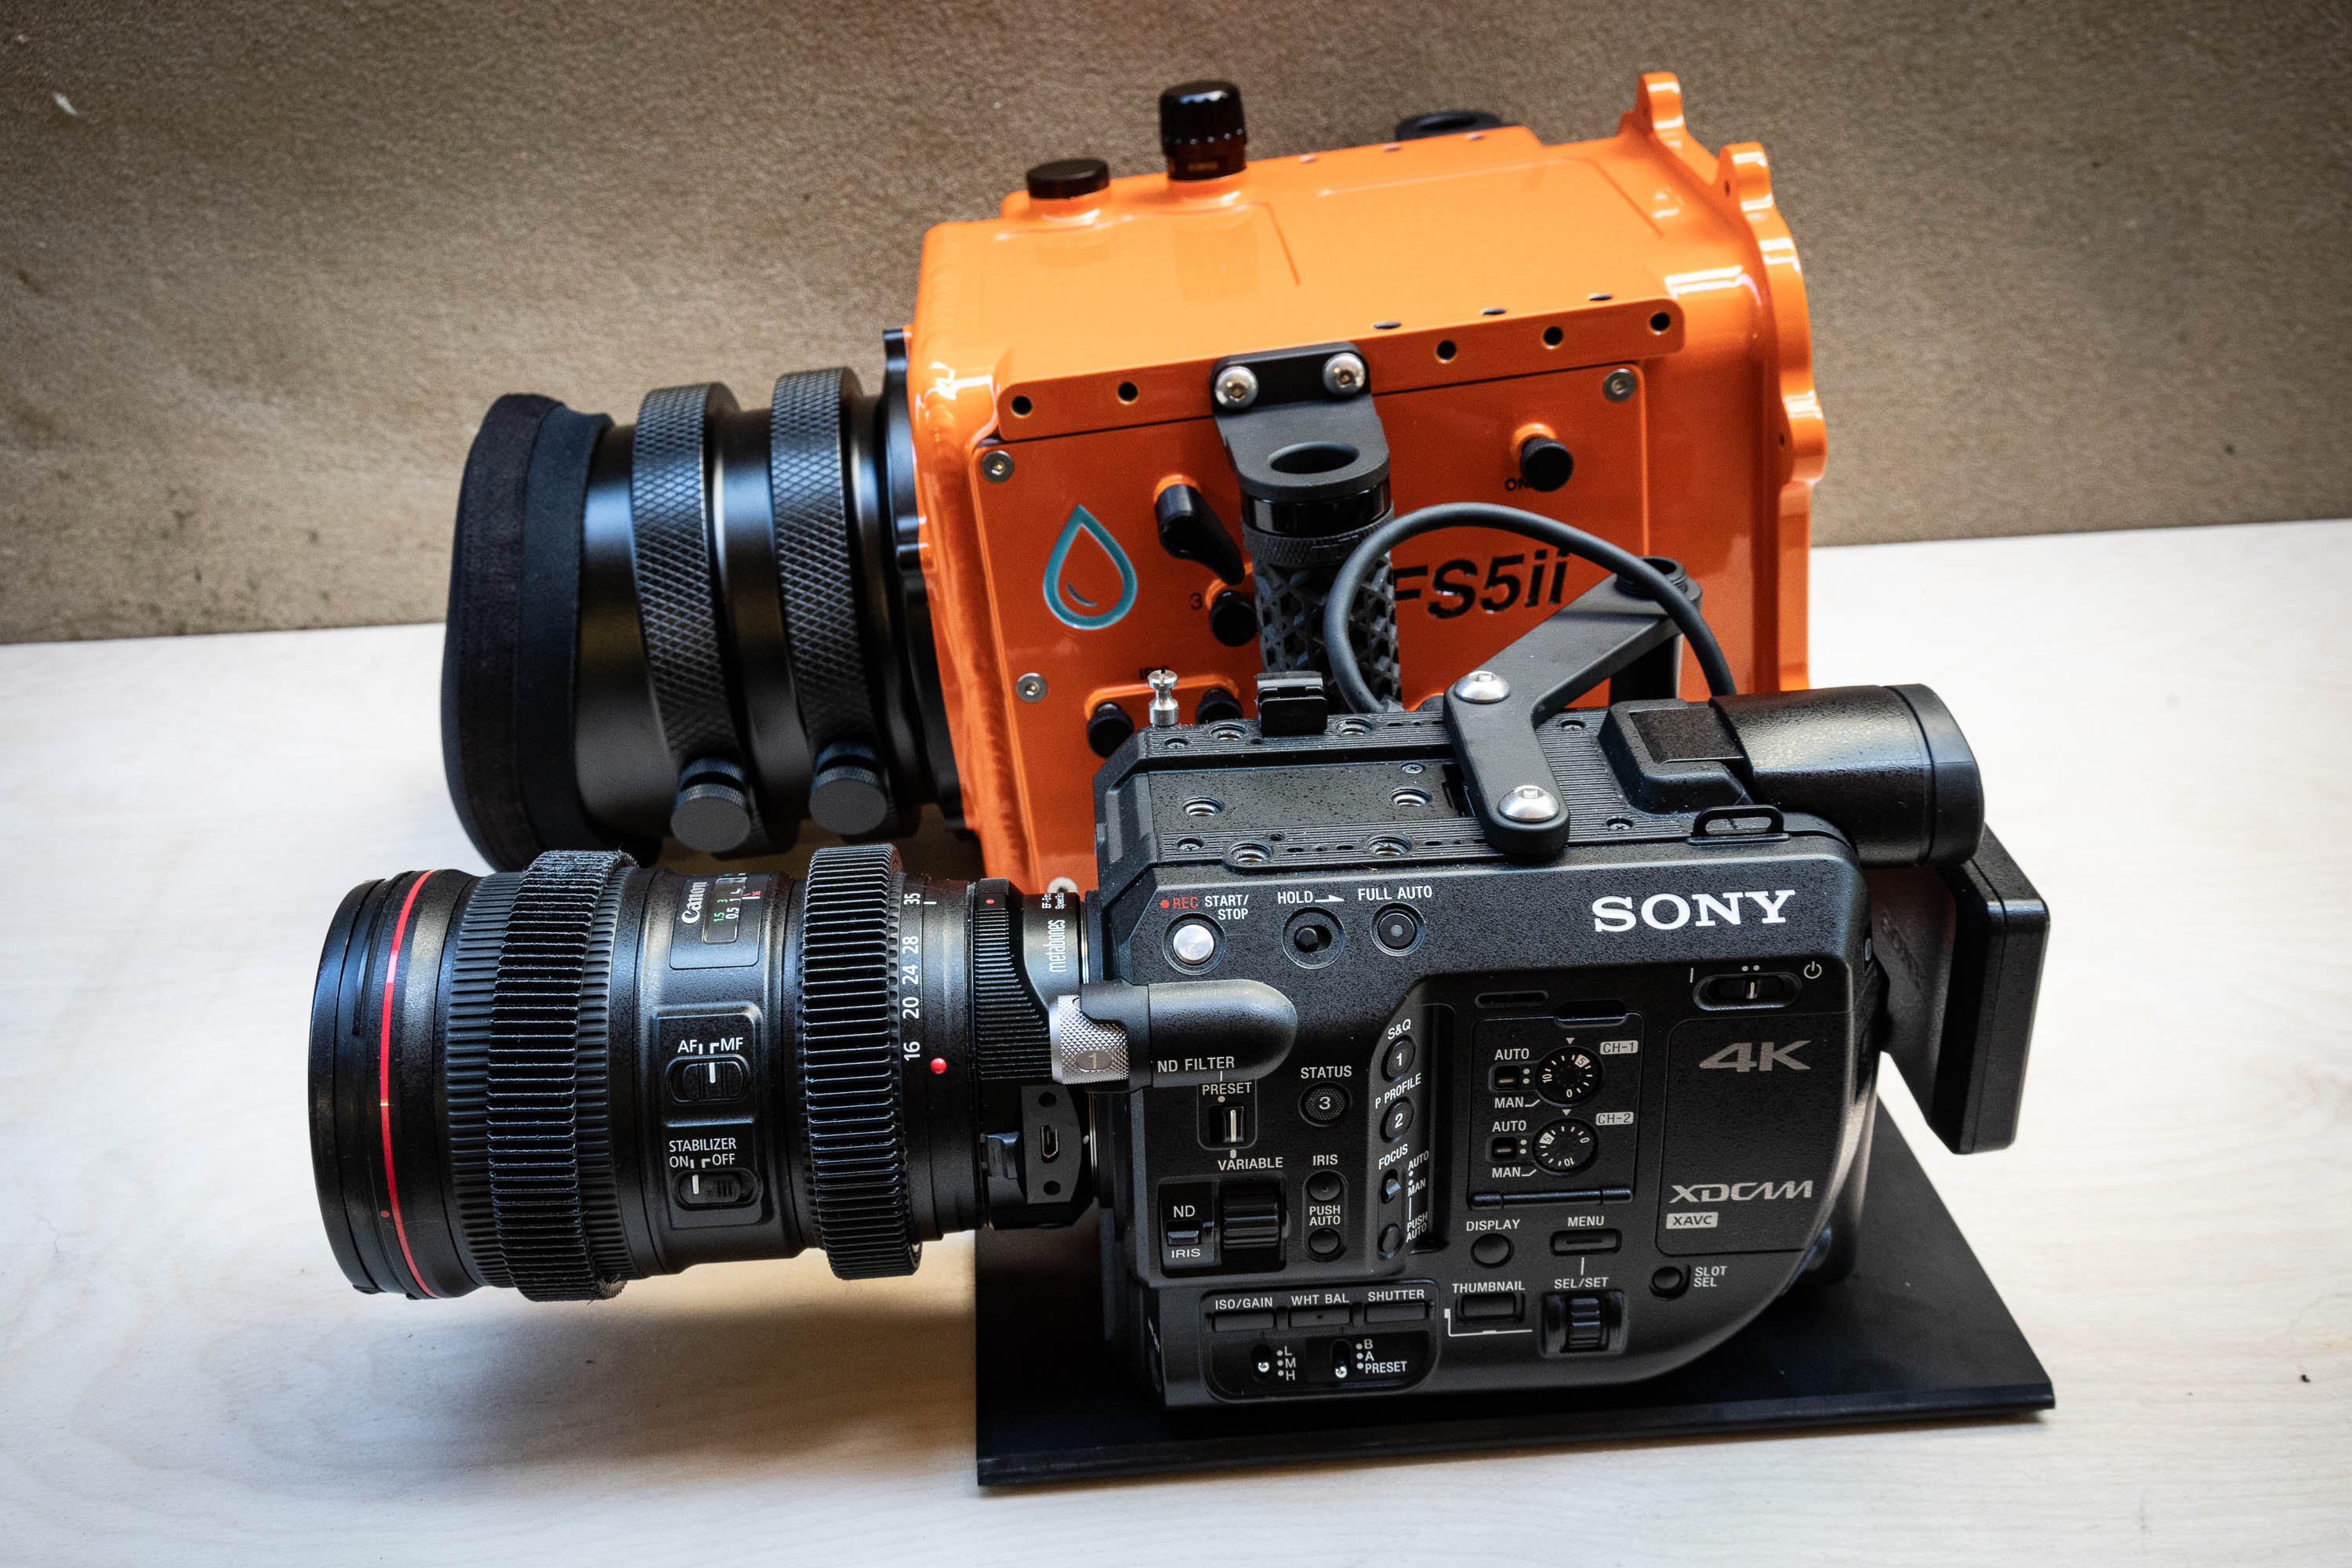 Sony FS5/FS5ii Housing